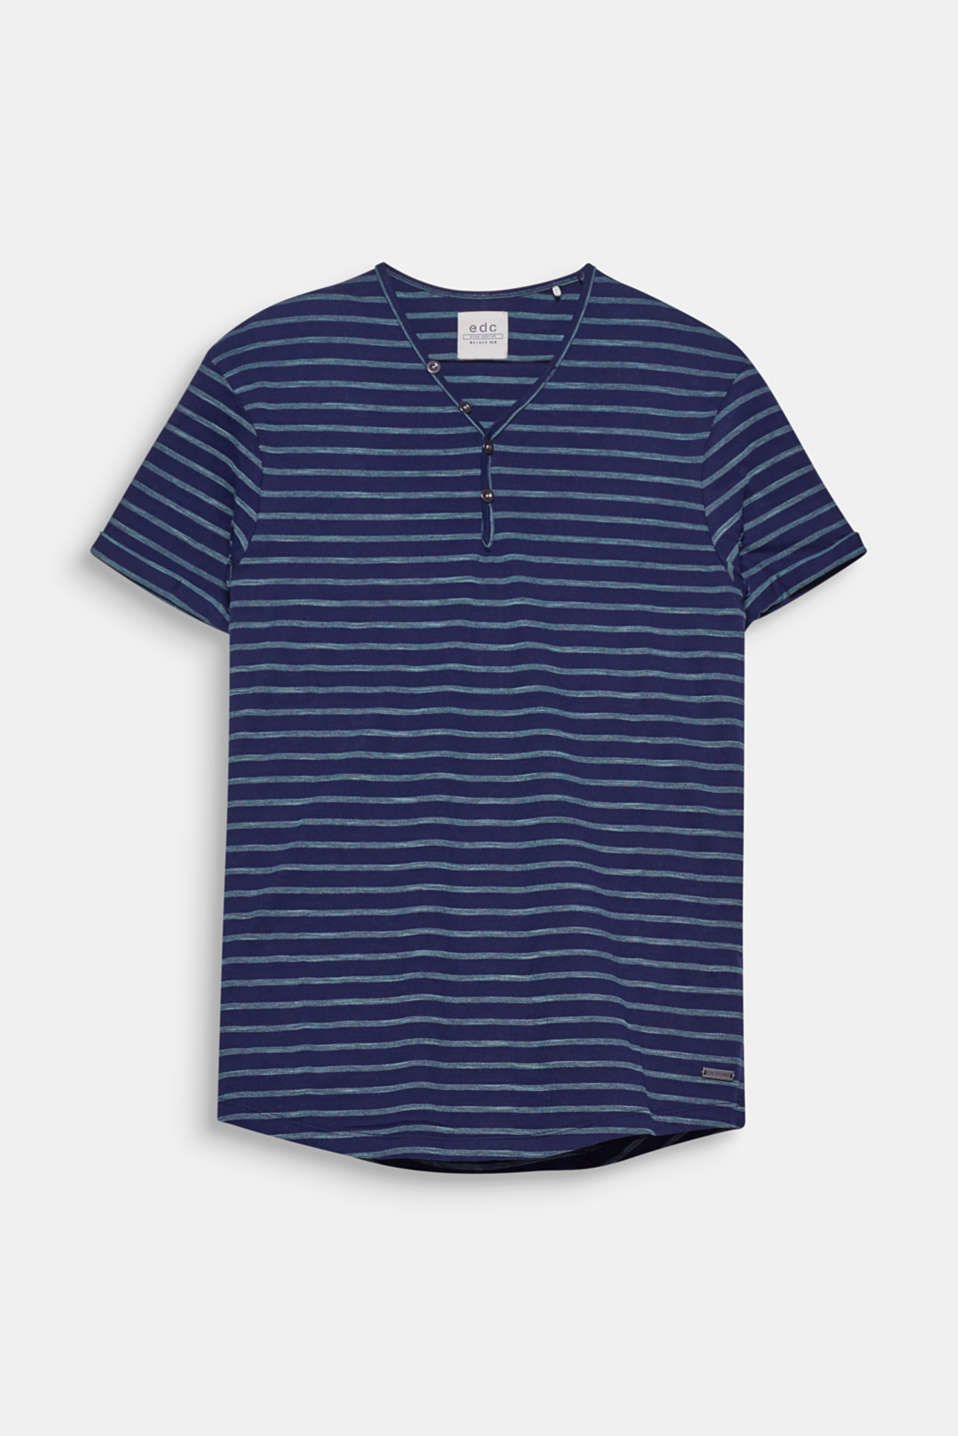 A sporty fashion basic: The textured stripes give this T-shirt a timeless look.